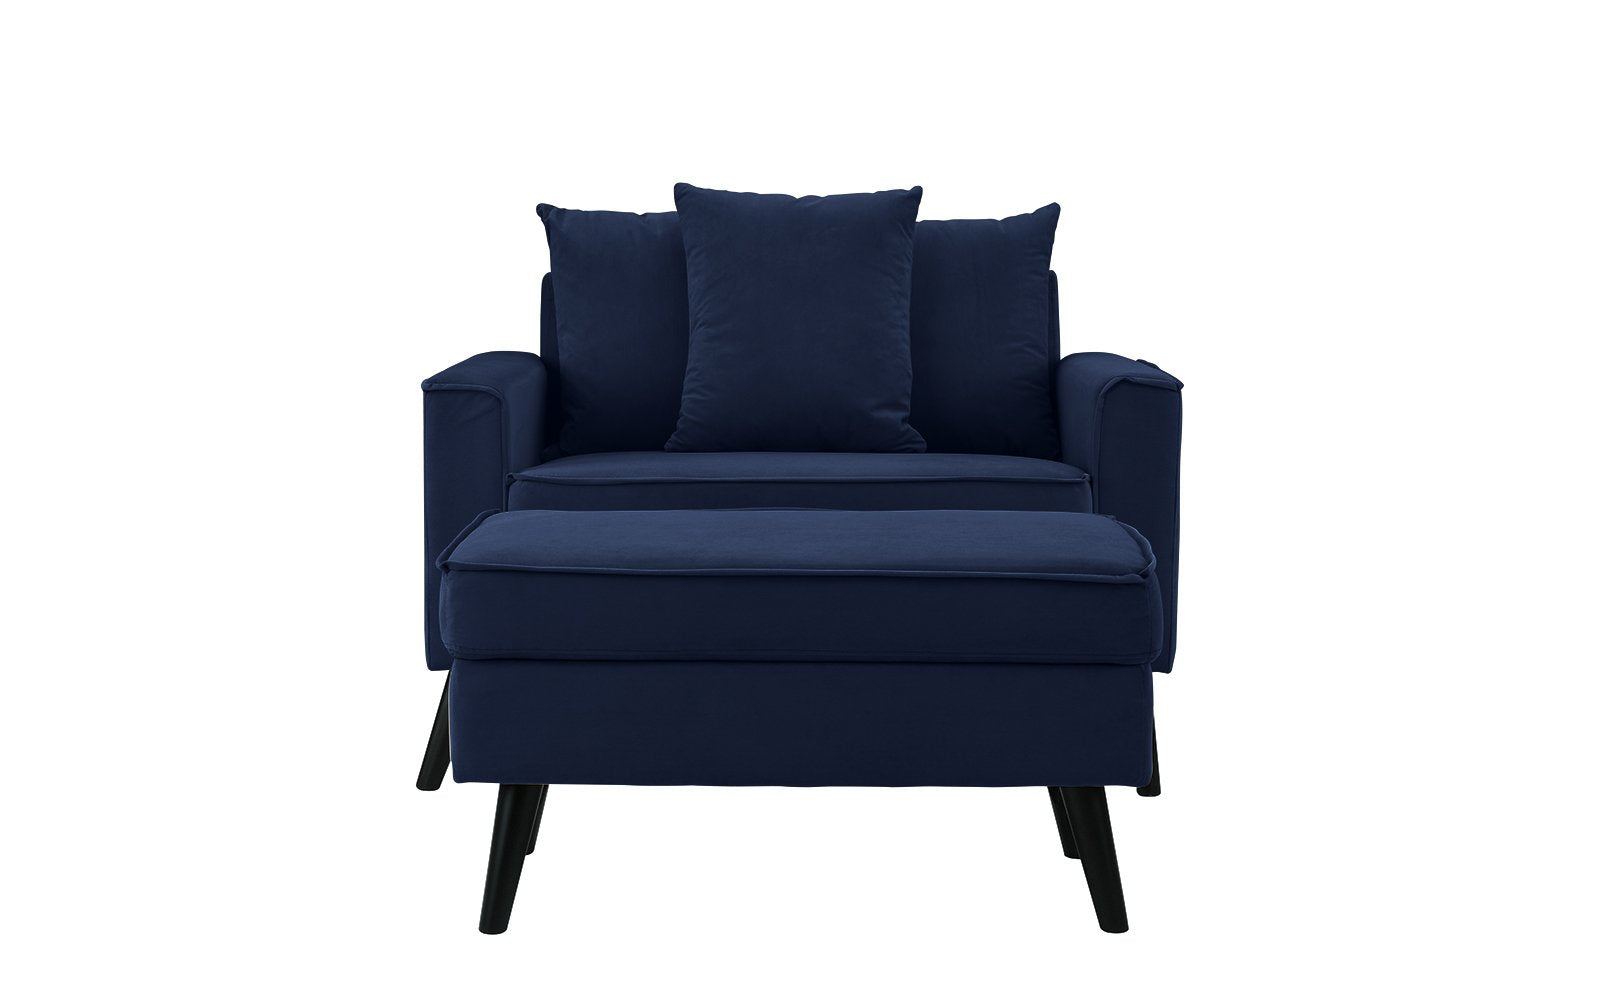 Etonnant Mel Mid Century Modern Wide Chair With Footrest   Navy ...